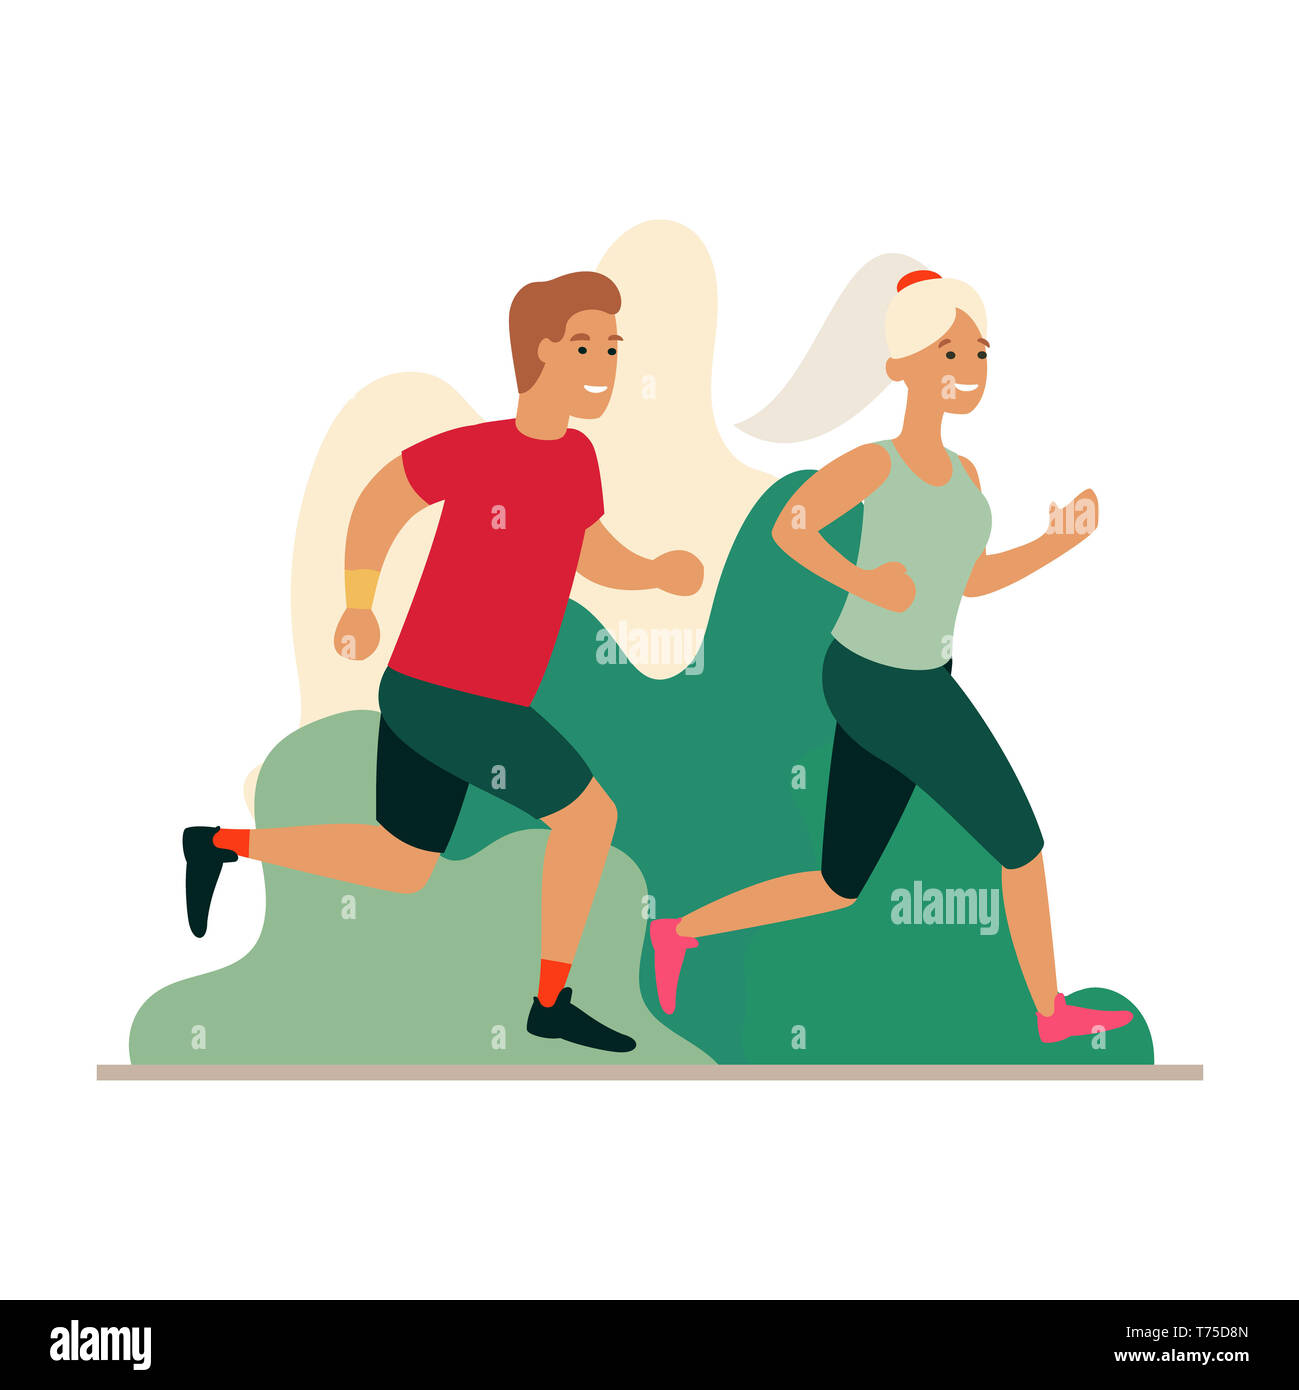 Man and woman running in the park. Couple jogging outdoors. Cartoon flat illustration. Run concept. - Stock Image